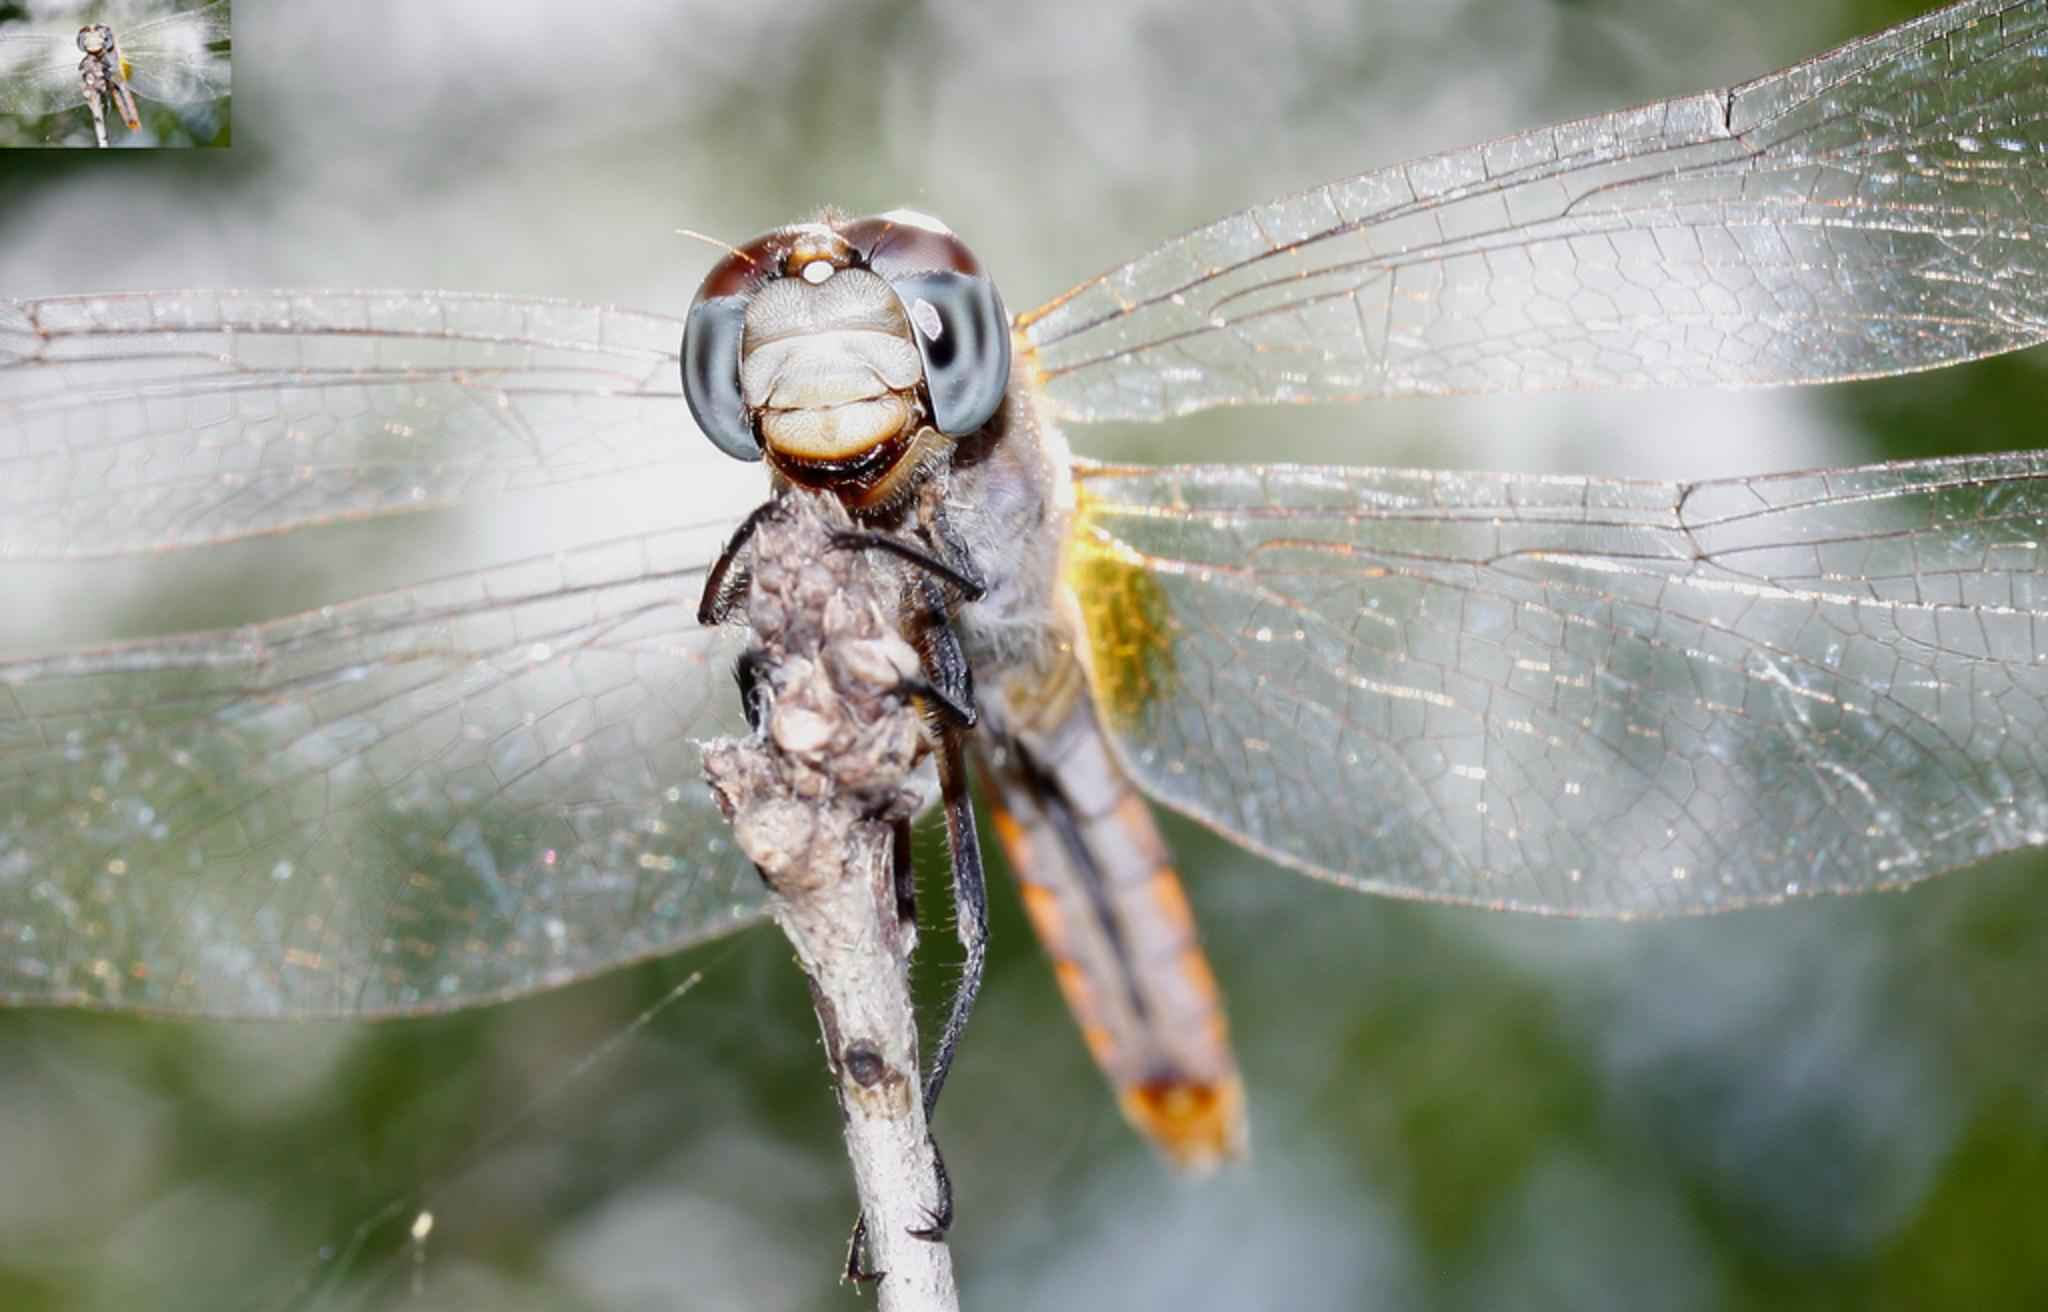 File:Dragonfly close